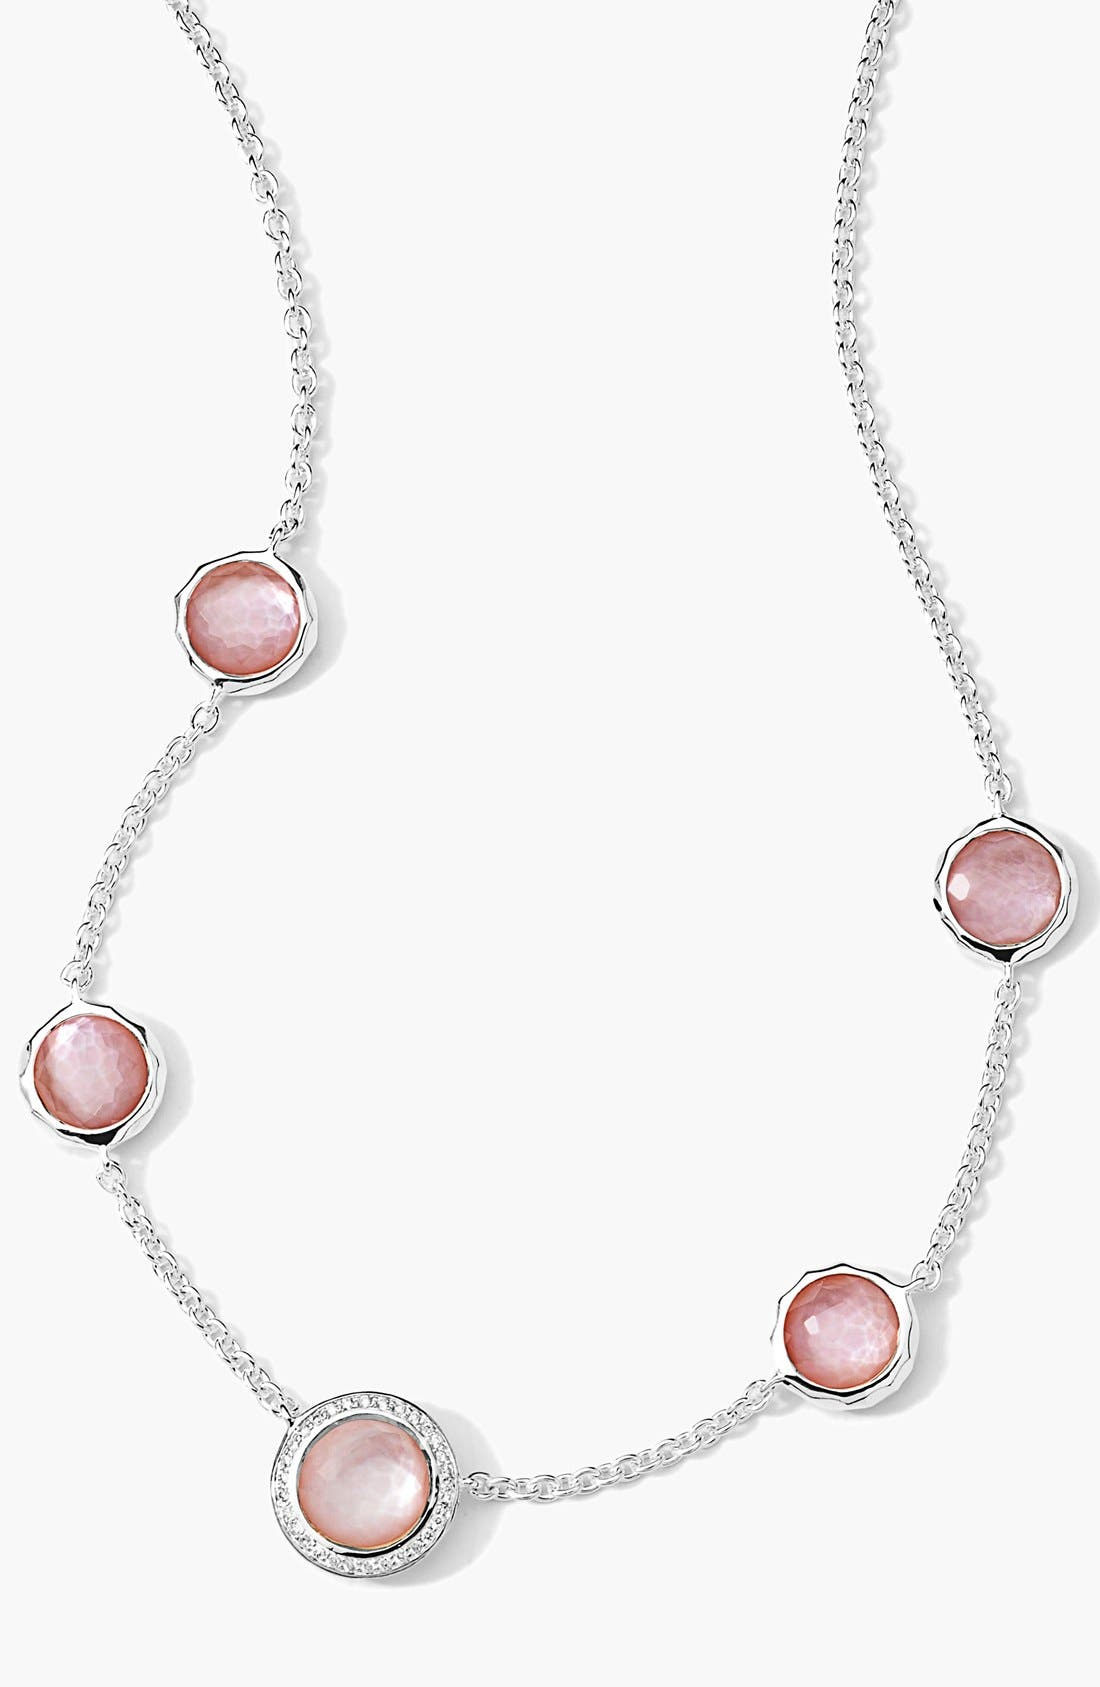 Main Image - Ippolita 'Stella' Diamond & Doublet Station Necklace